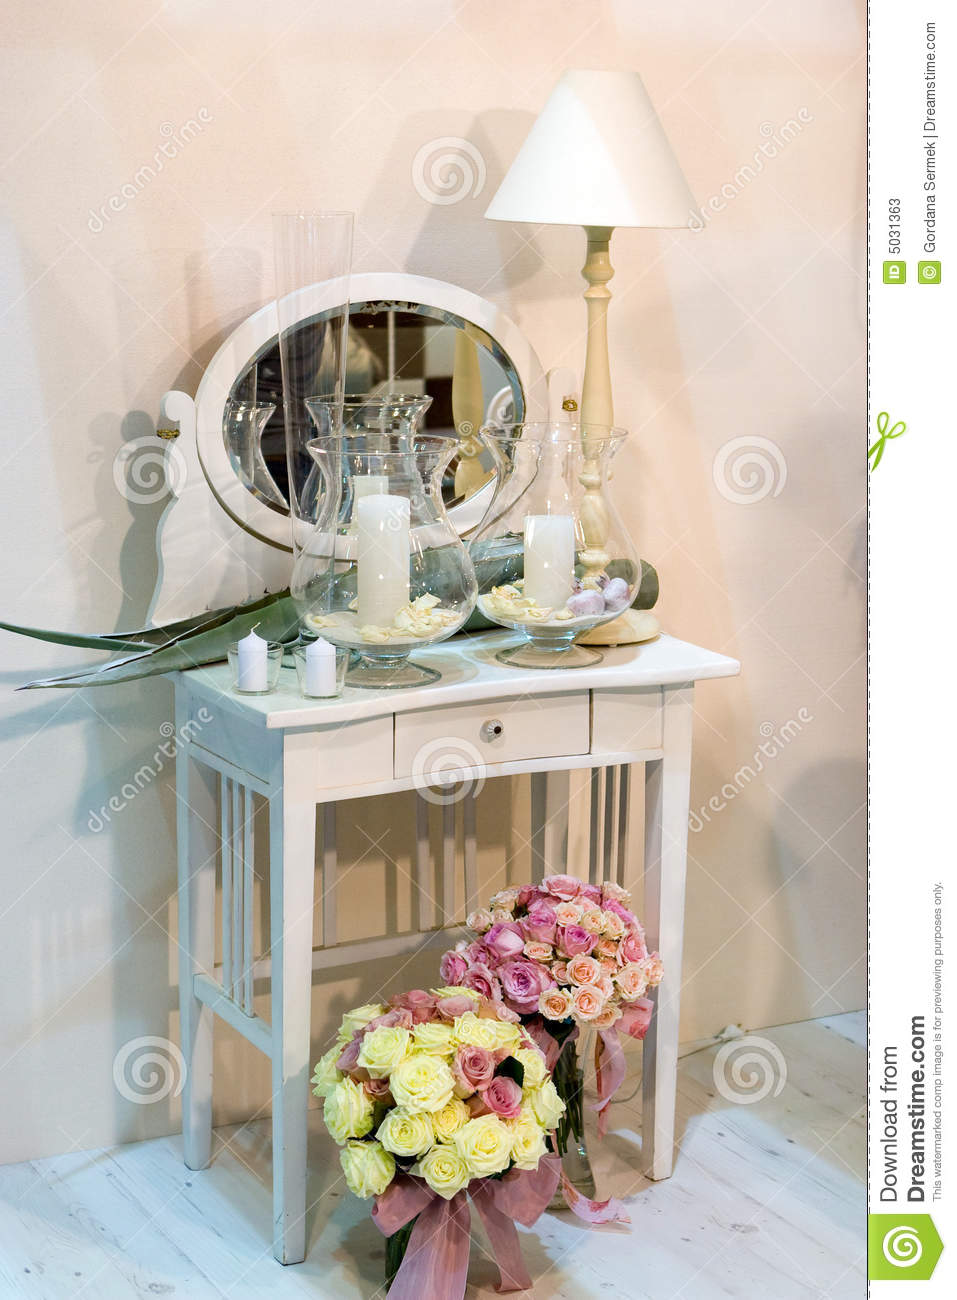 Shabby chic stock photos   image: 5031363